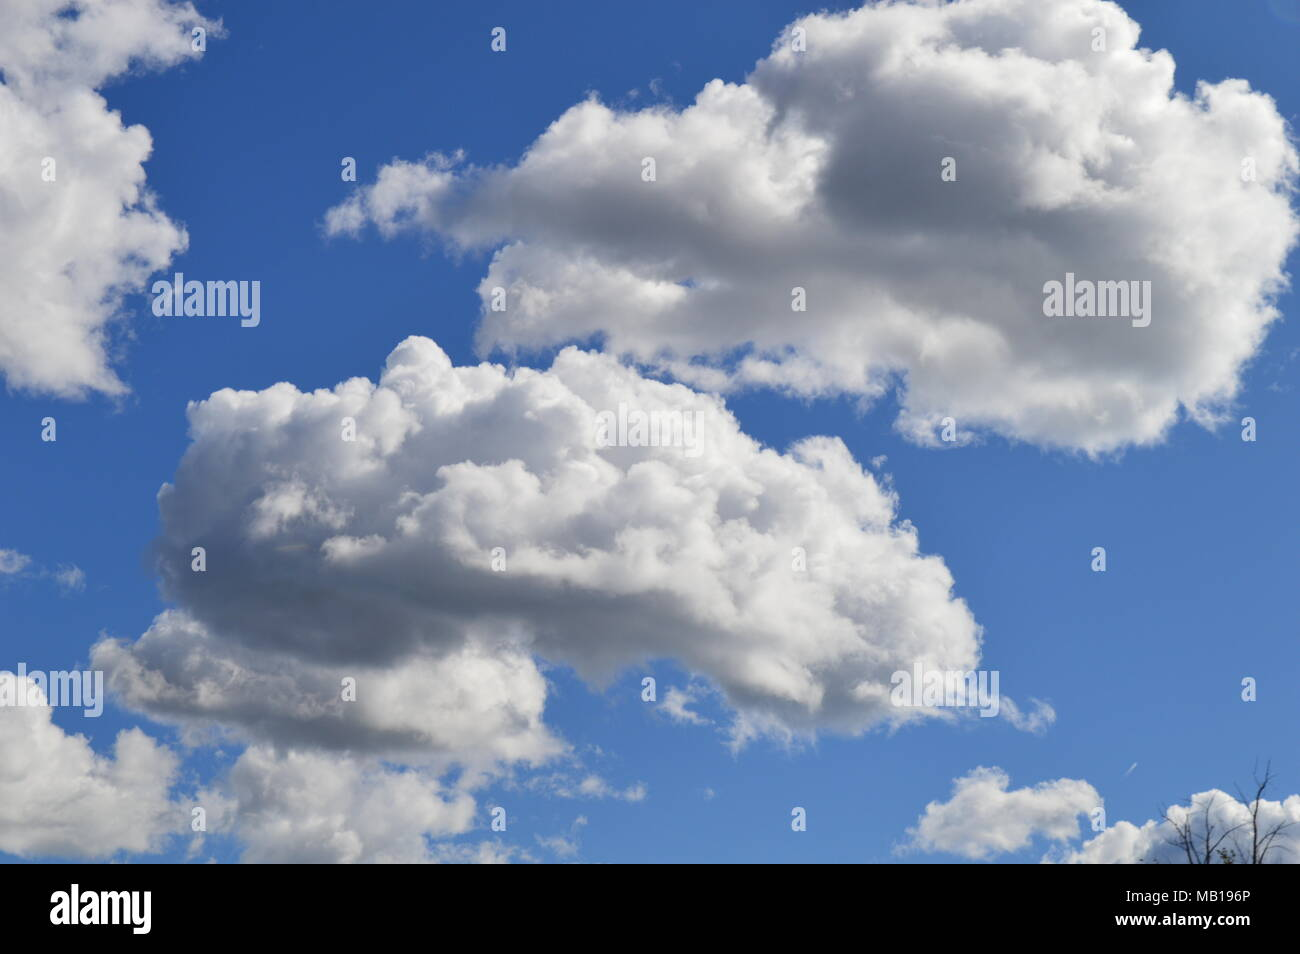 Fluffy clouds over a perfect blue sky - Stock Image